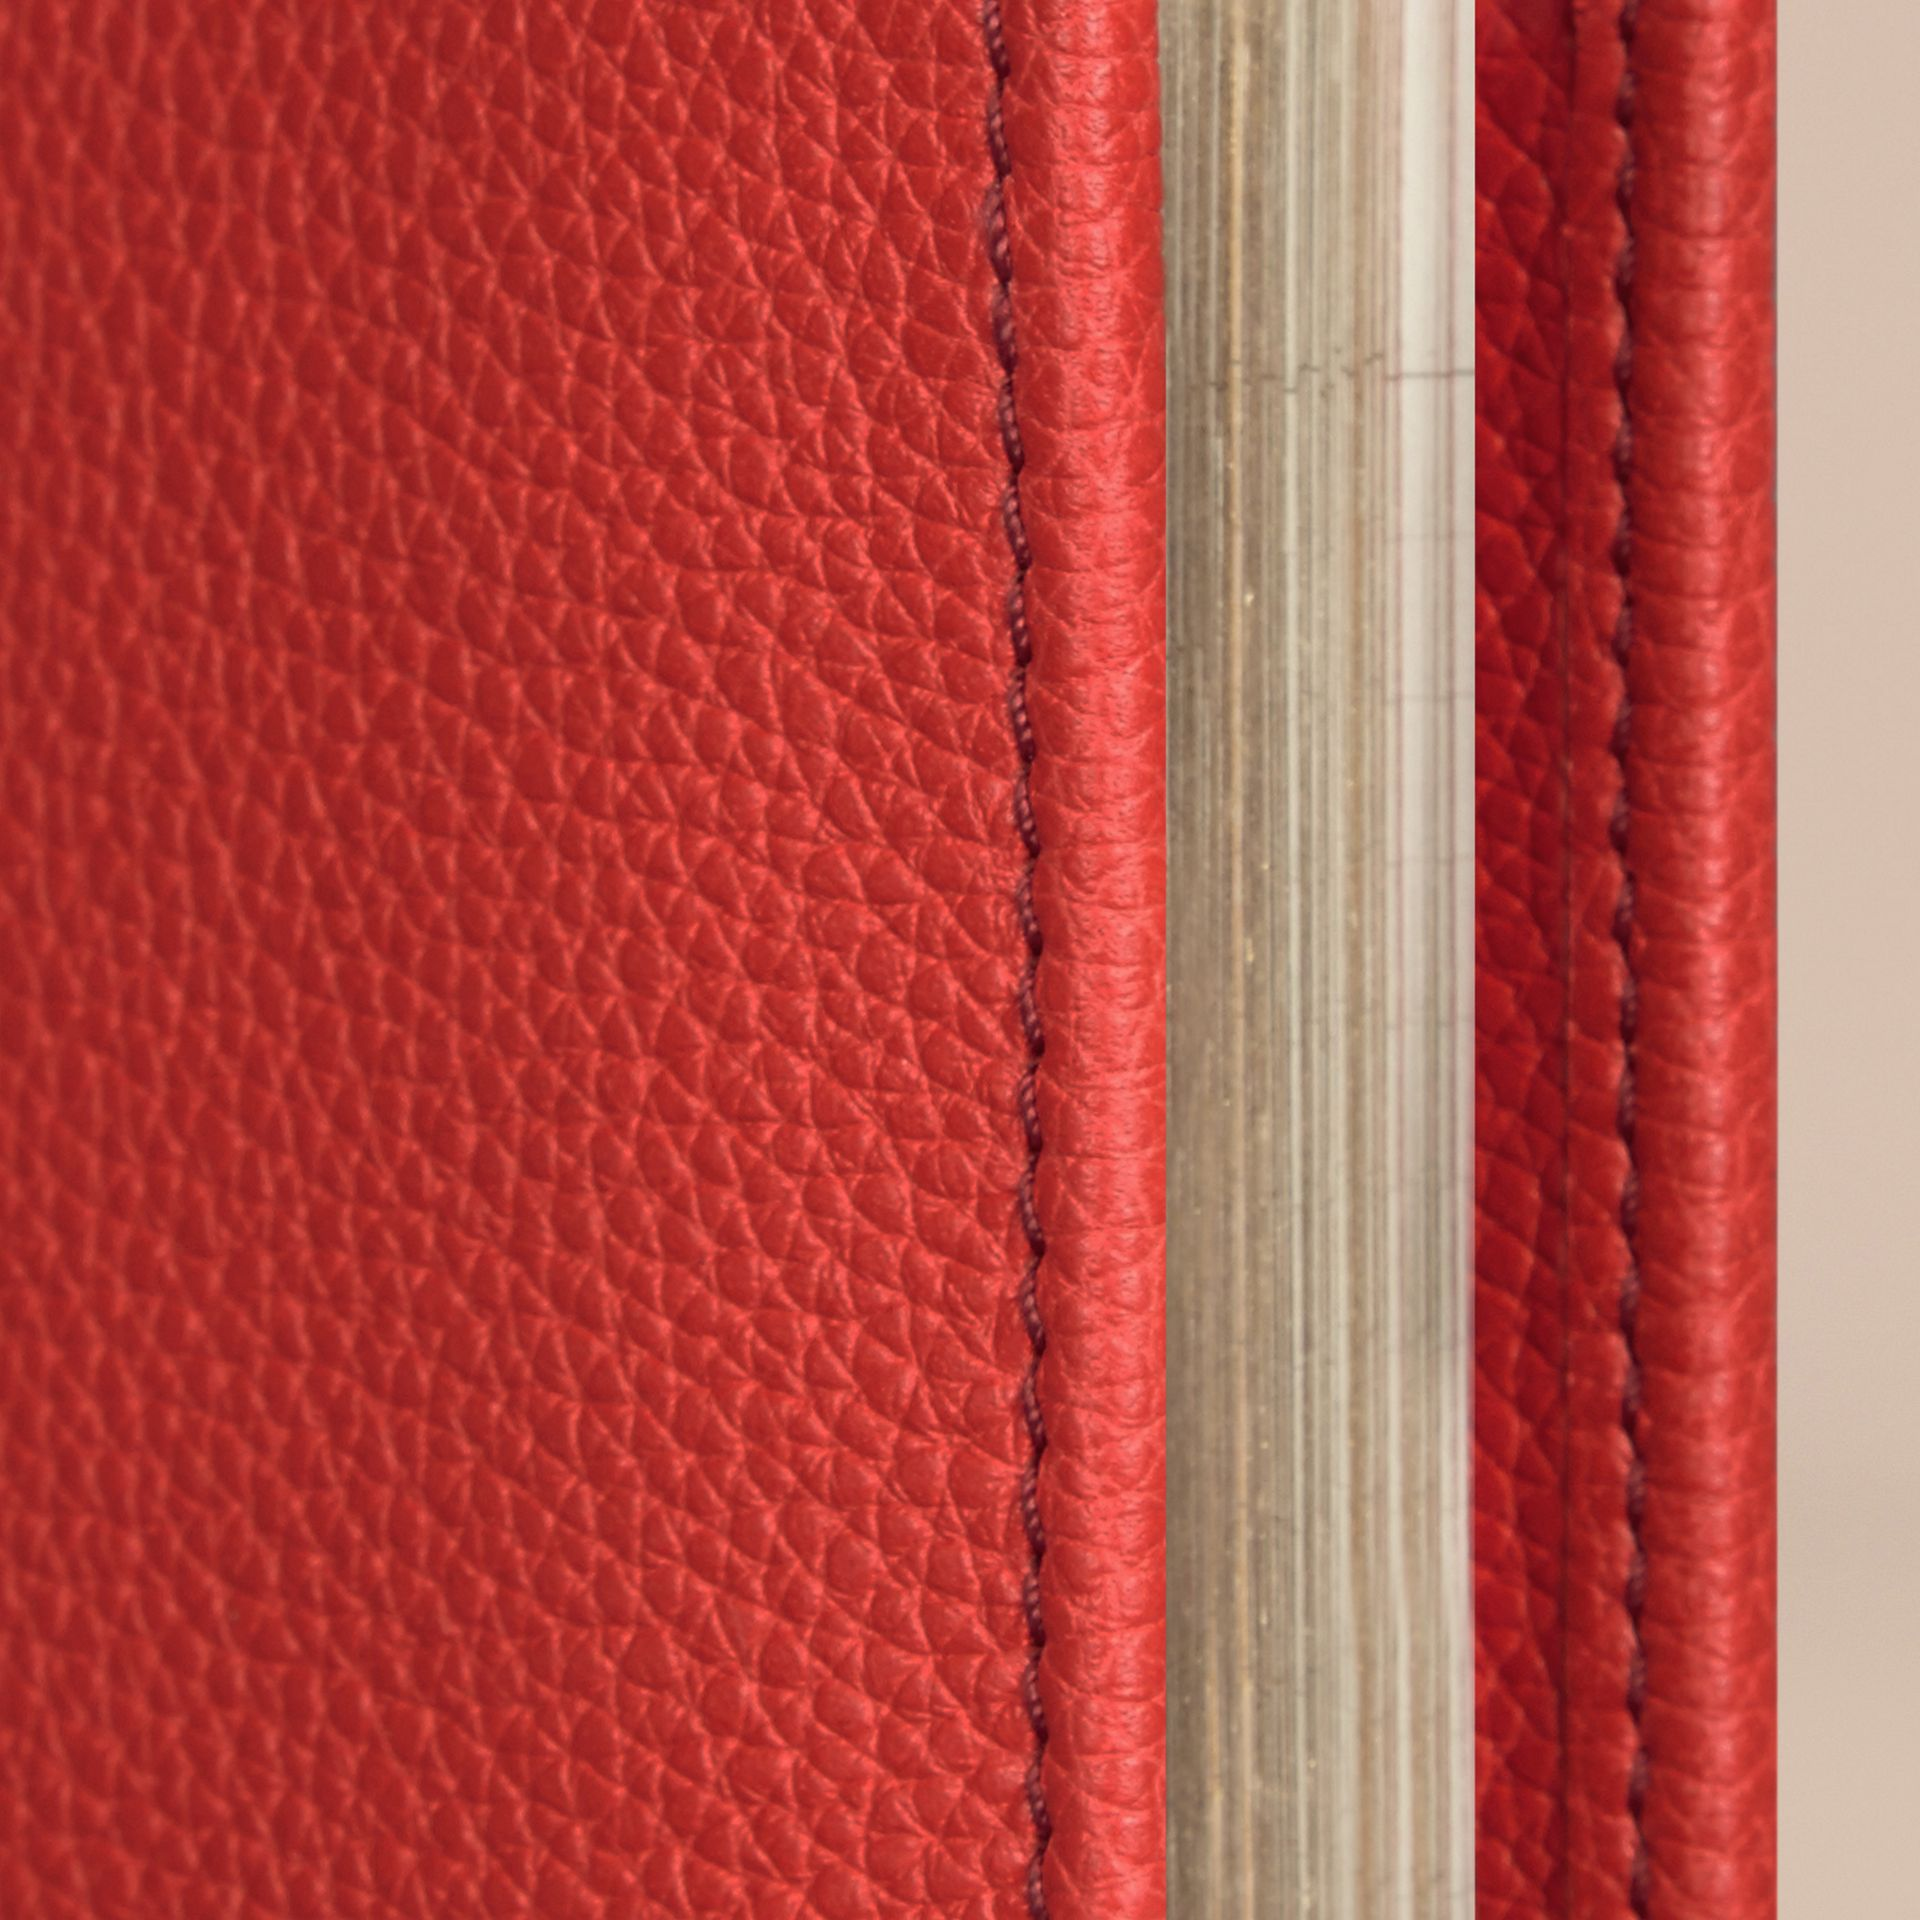 Grainy Leather 18 Month 2016/17 A5 Diary in Orange Red | Burberry - gallery image 2